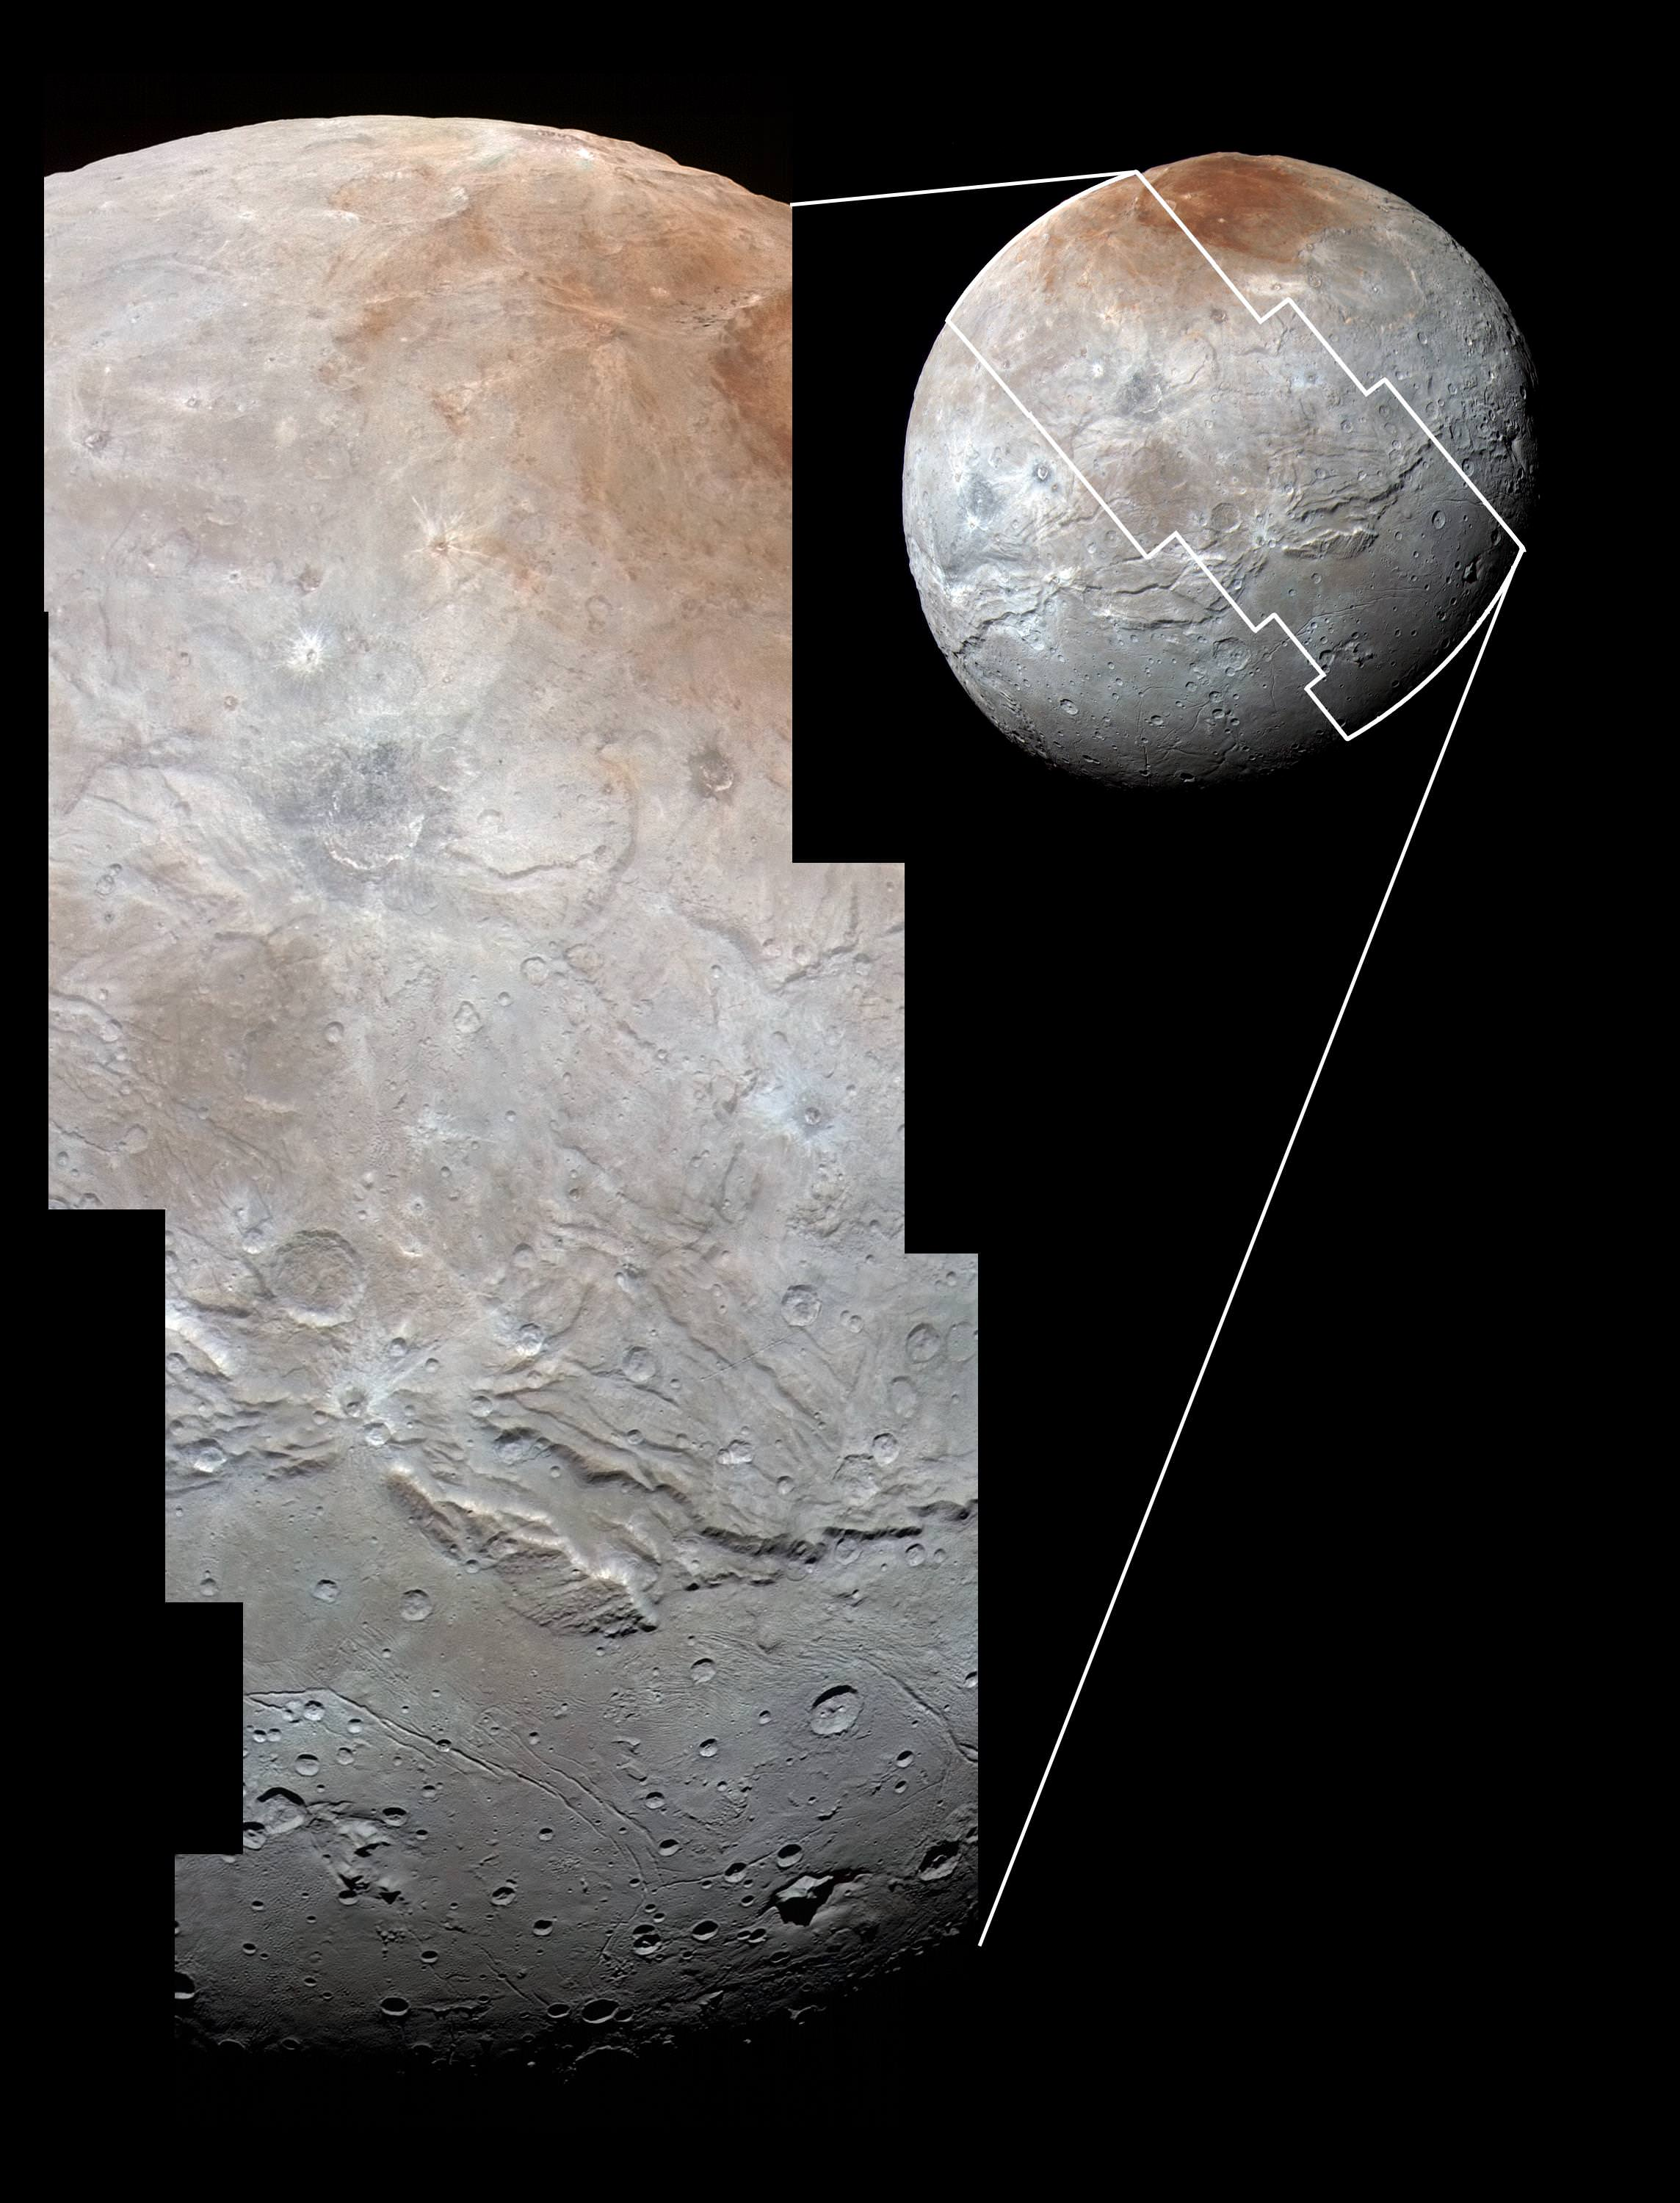 High-resolution images of Charon were taken by the Long Range Reconnaissance Imager on NASA's New Horizons spacecraft, shortly before closest approach on July 14, 2015, and overlaid with enhanced color from the Ralph/Multispectral Visual Imaging Camera (MVIC). Charon's cratered uplands at the top are broken by series of canyons, and replaced on the bottom by the rolling plains of the informally named Vulcan Planum. The scene covers Charon's width of 754 miles (1,214 kilometers) and resolves details as small as 0.5 miles (0.8 kilometers).  Credits: NASA/JHUAPL/SwRI